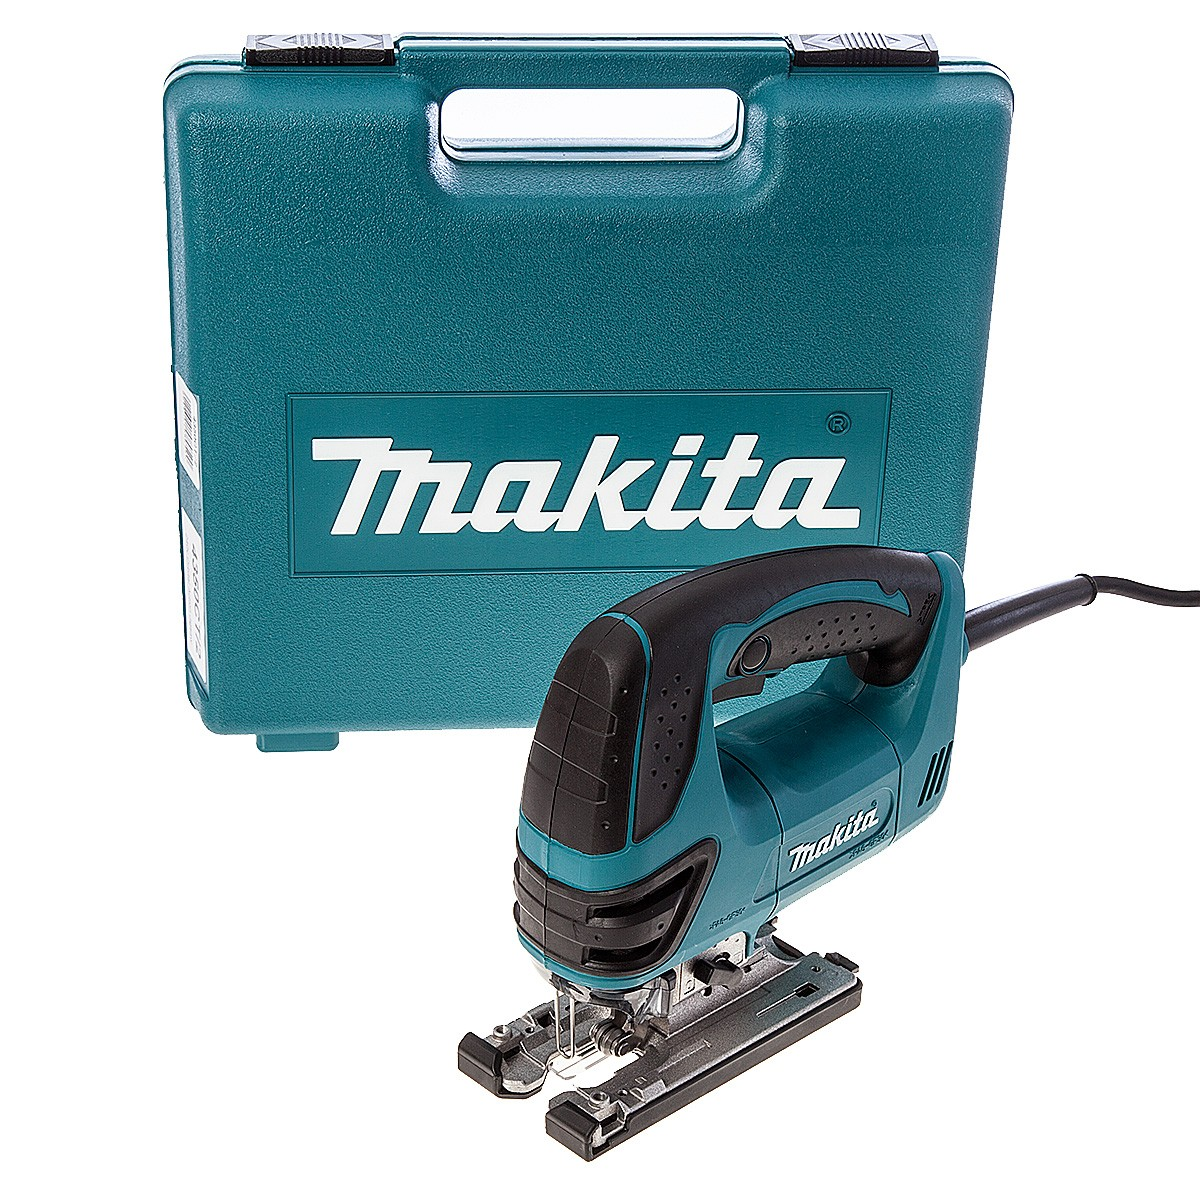 Makita 4350fct orbital action top handle jigsaw in carry case makita 4350fct orbital action top handle jigsaw in carry case powertool world greentooth Images